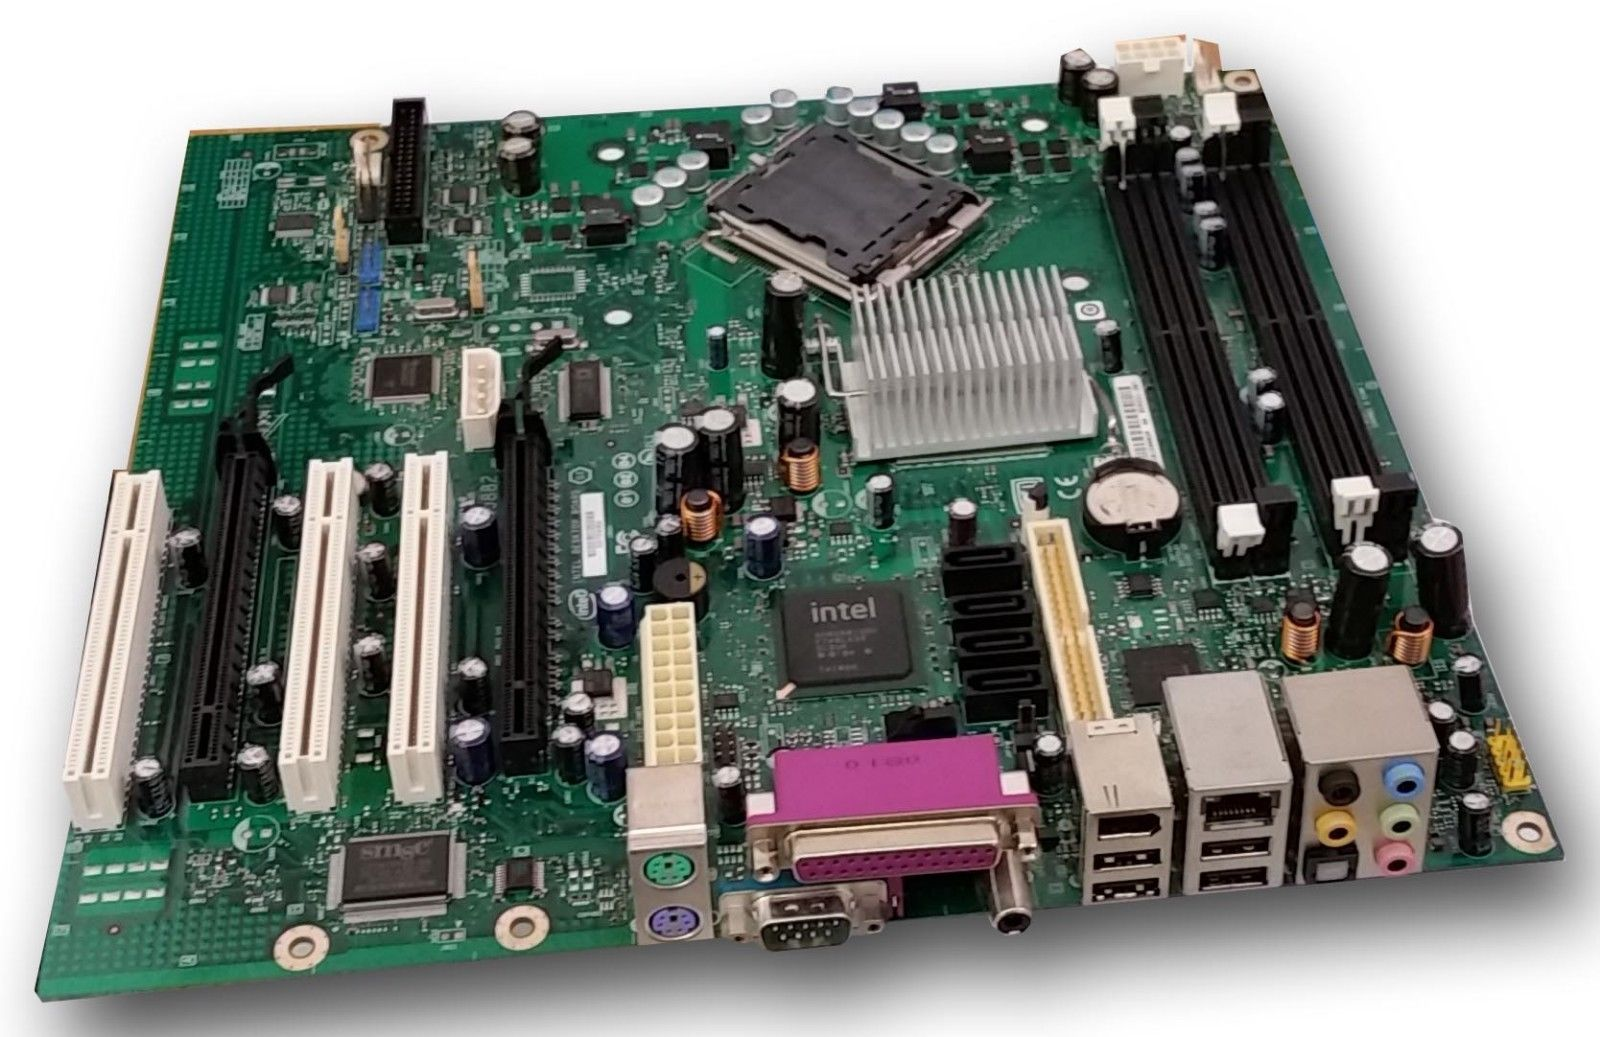 Intel D975XBG Socket-775 Audio LAN BIG ARM Motherboard